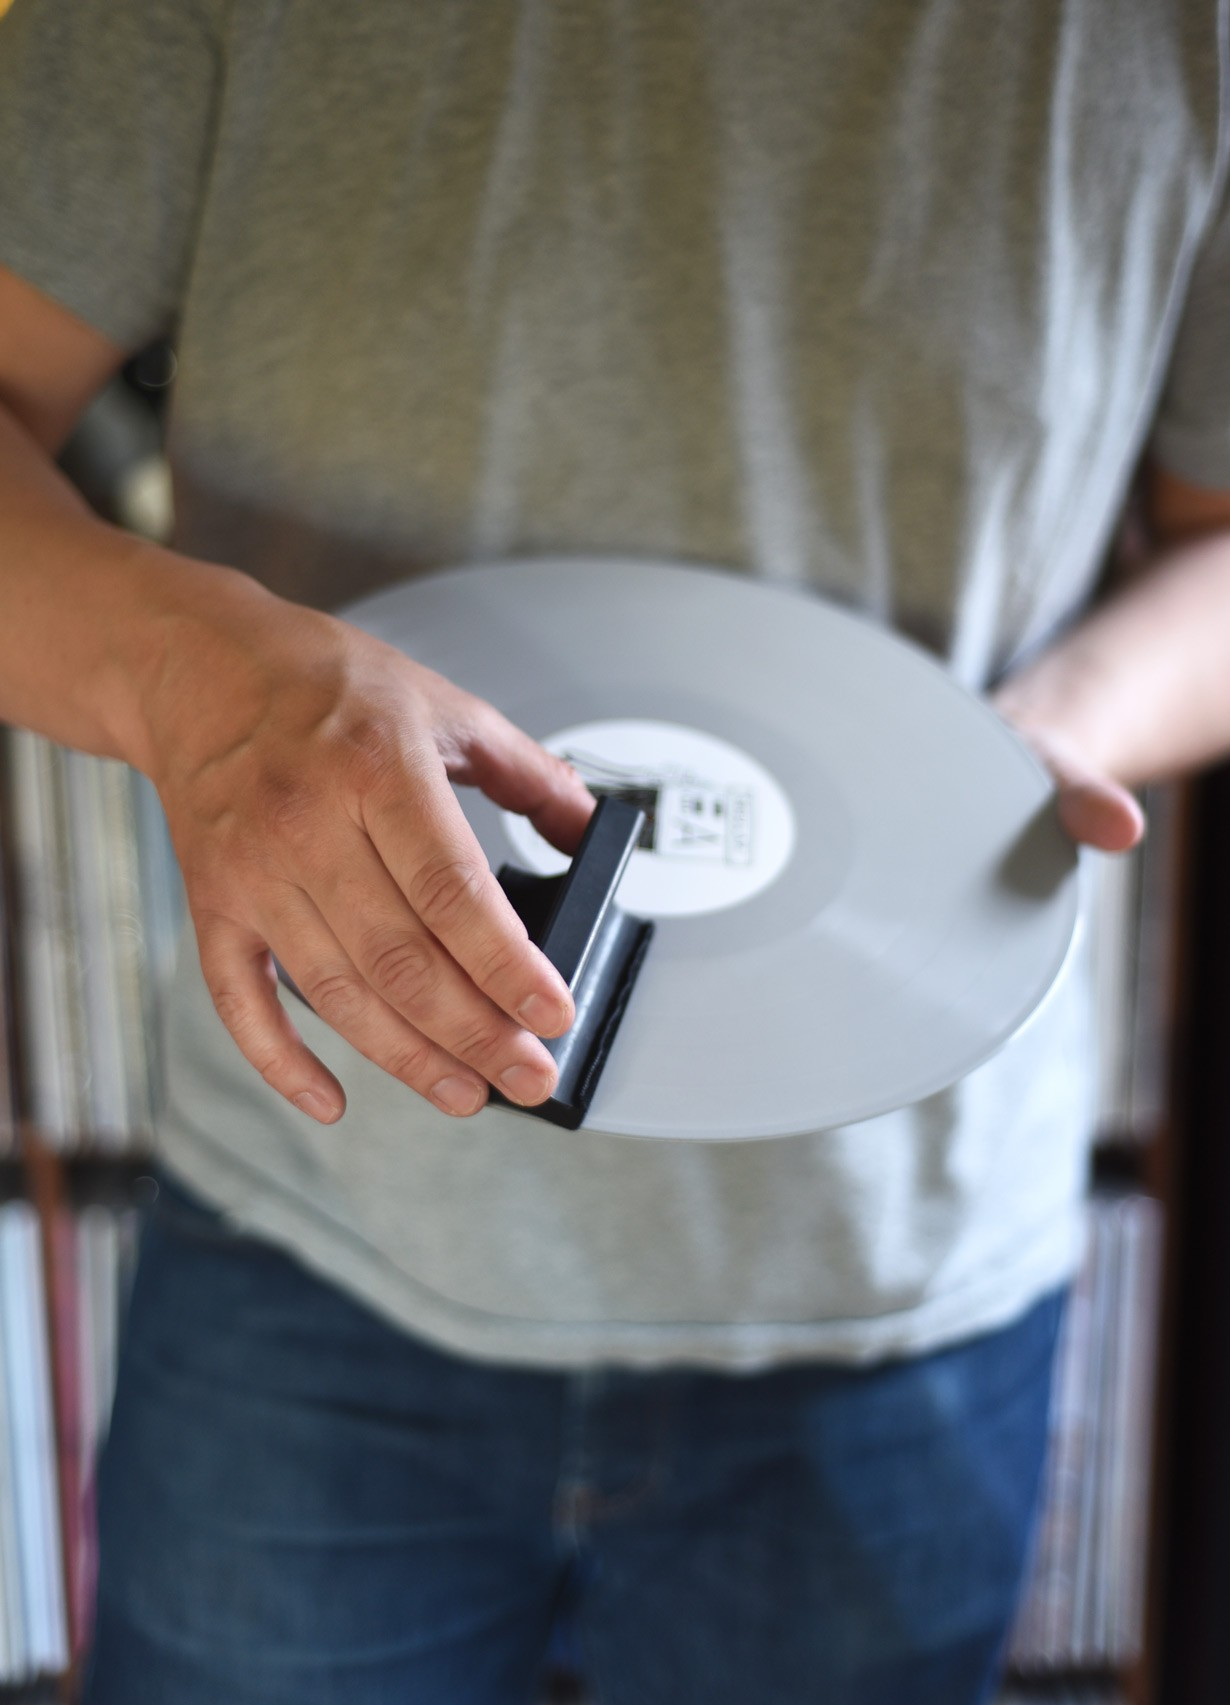 How To Clean Vinyl Records - Three Methods from Turntable Kitchen